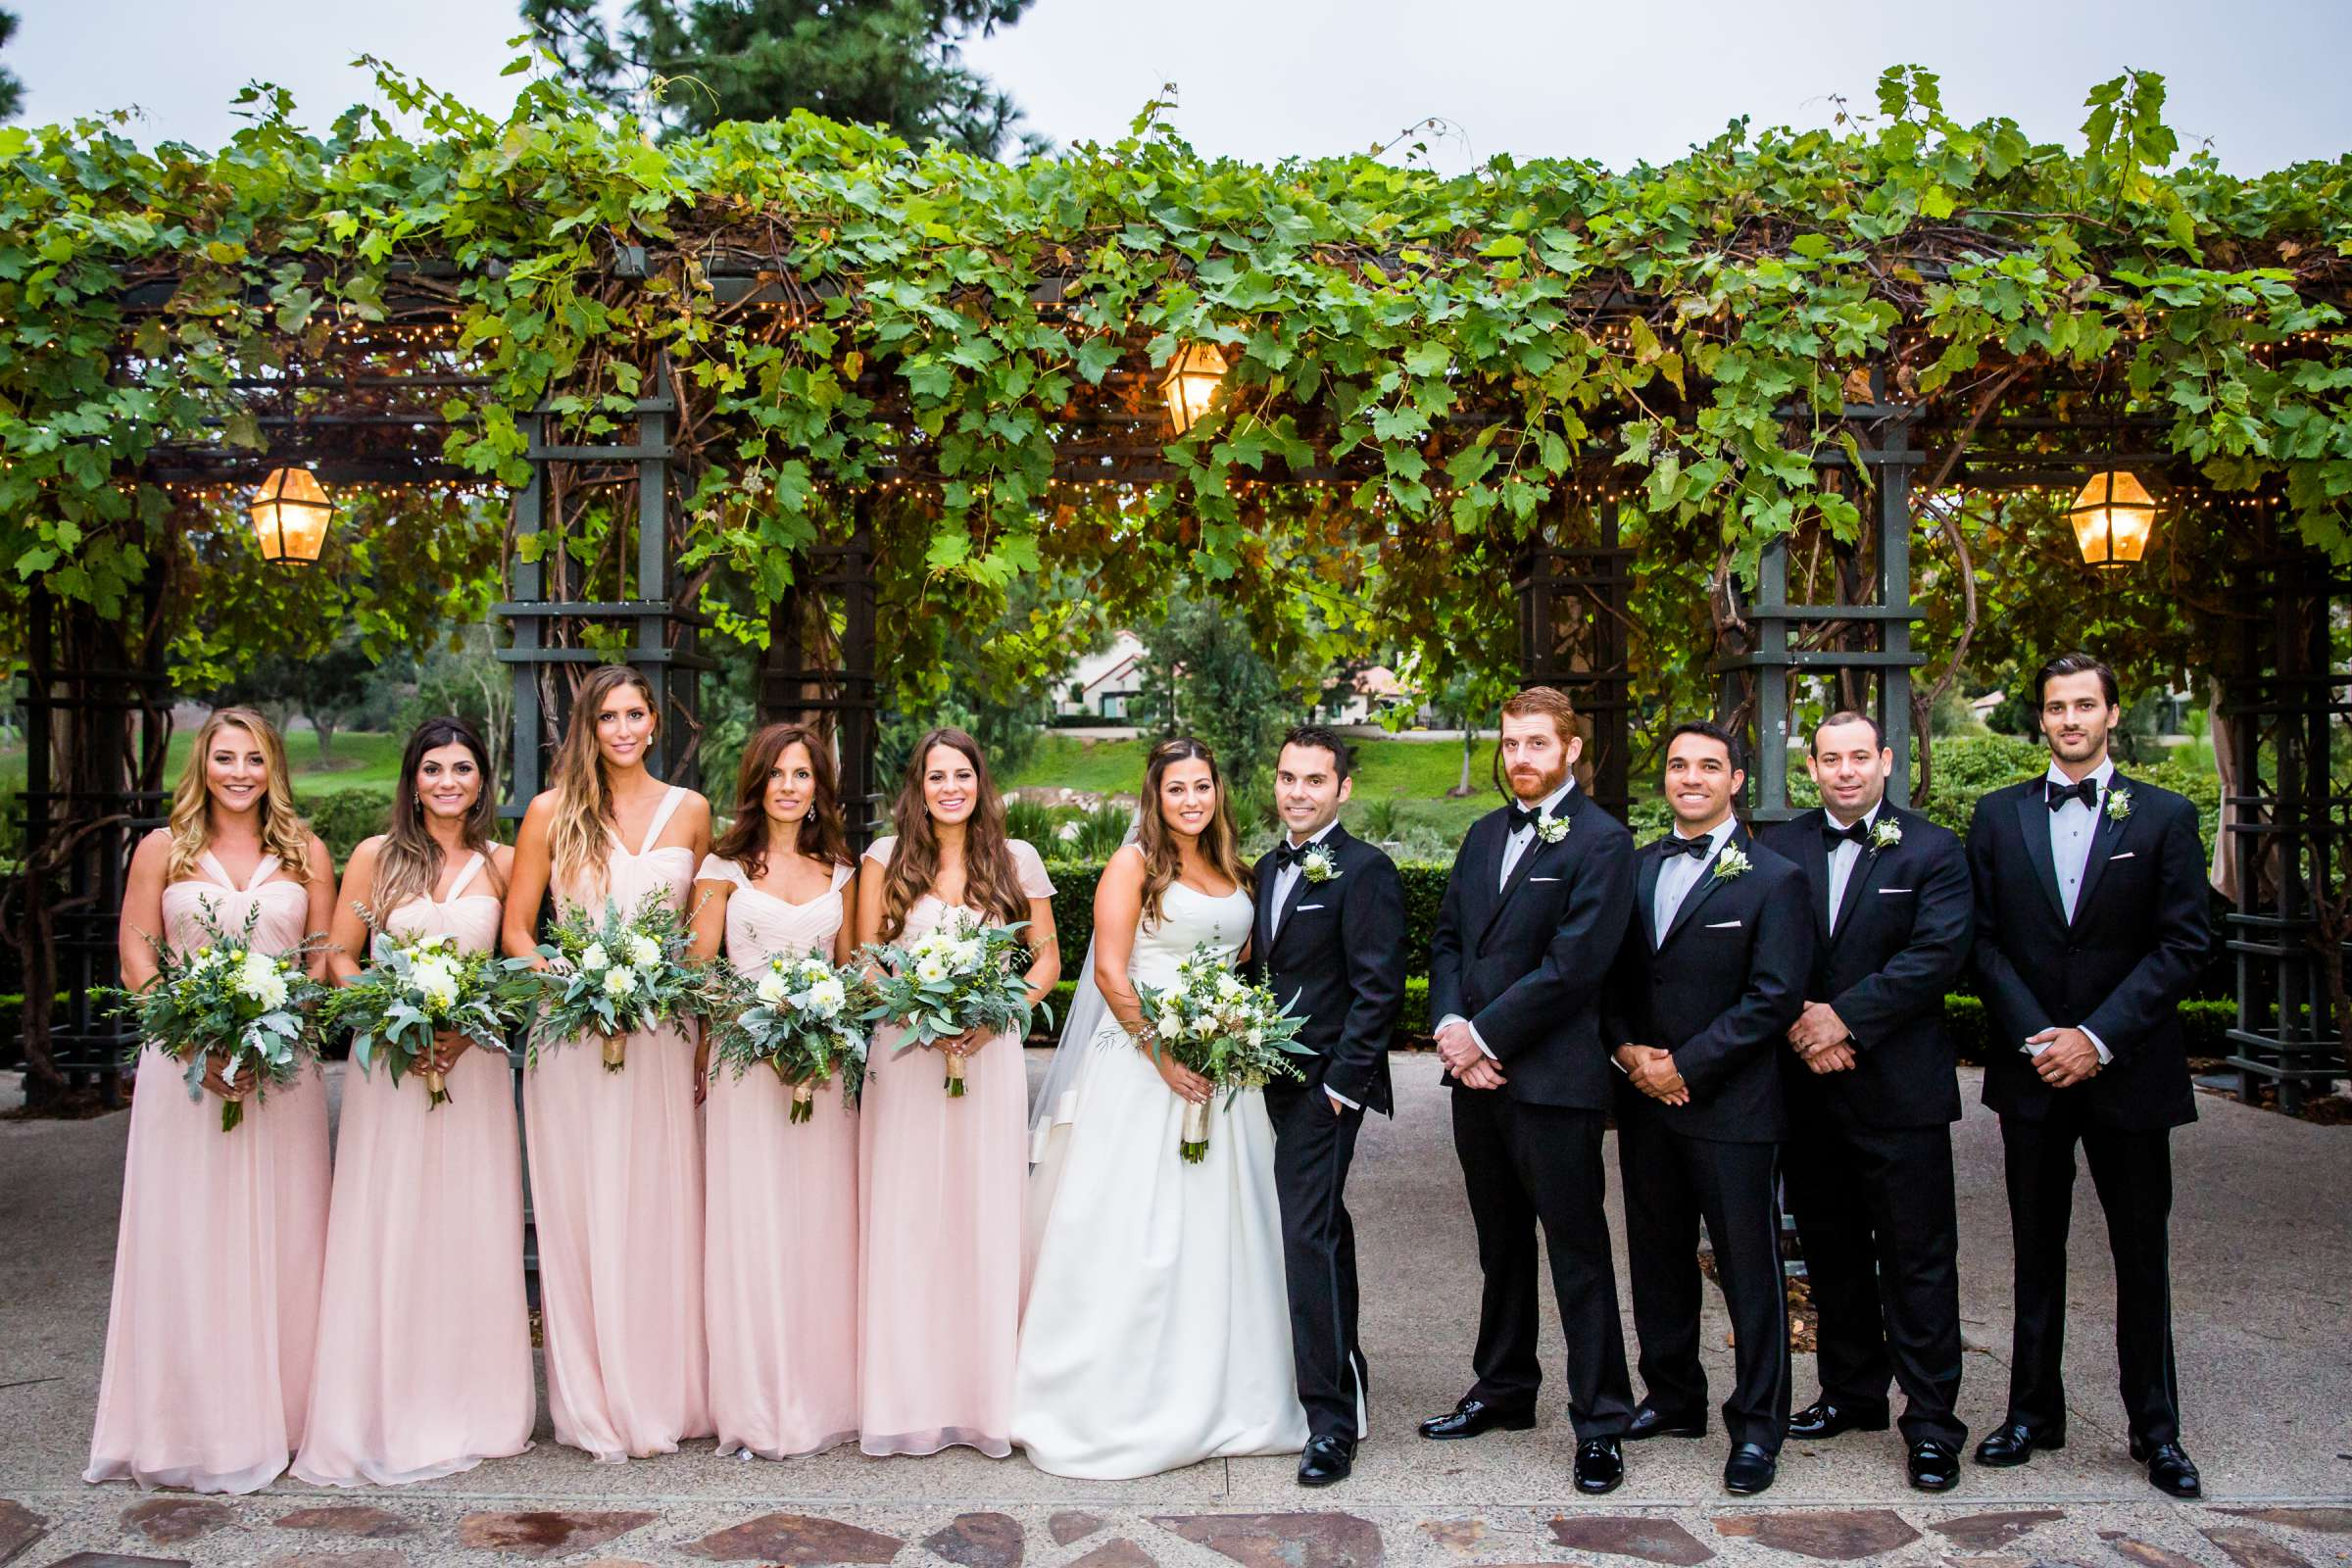 Rancho Bernardo Inn Wedding coordinated by Très Chic Events, Stefania and Nicholas Wedding Photo #6 by True Photography